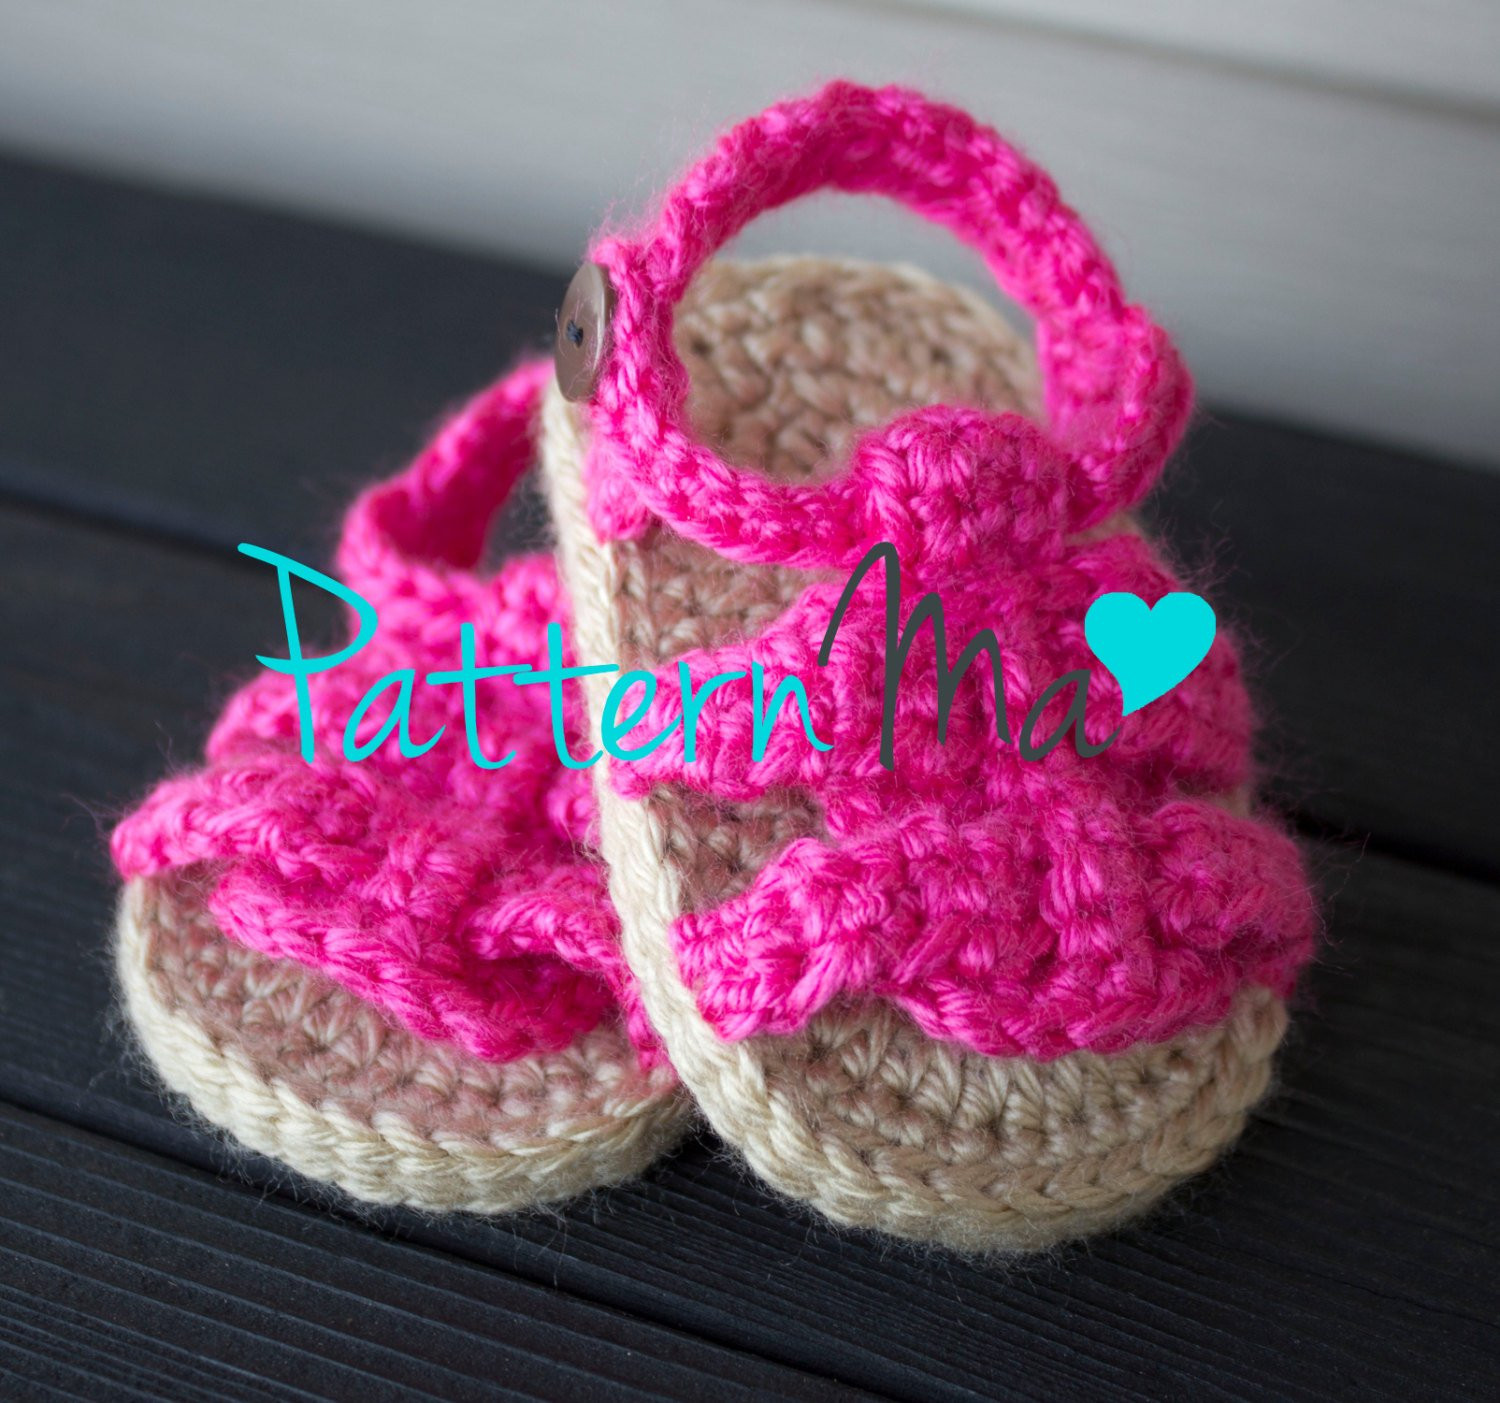 Crochet Baby Sandals Beautiful Crochet Baby Pattern Sandals 9 Of New 46 Models Crochet Baby Sandals